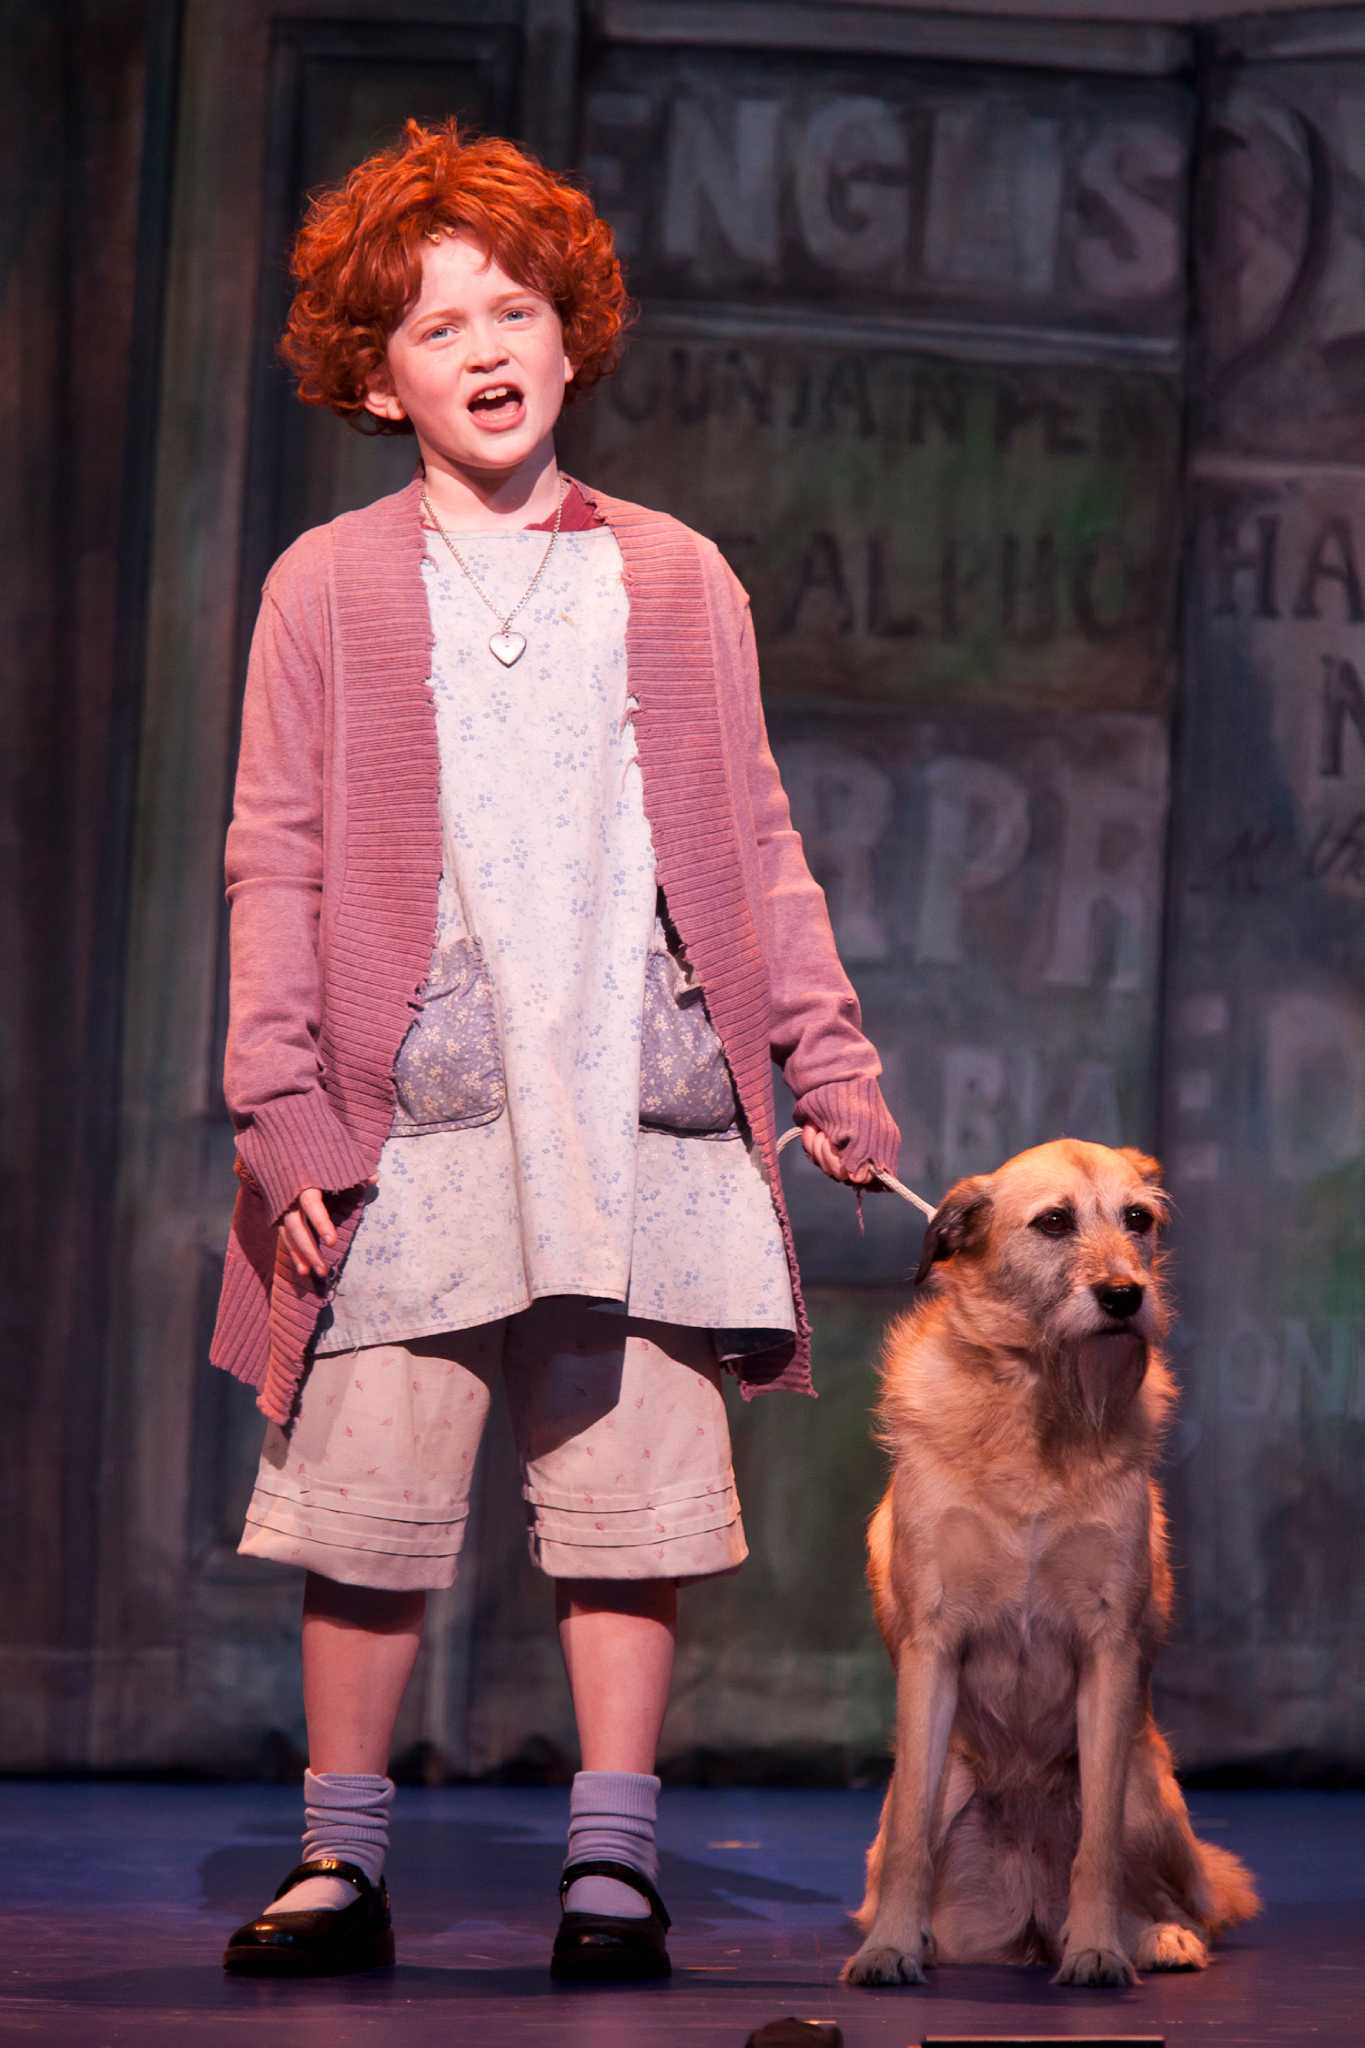 Brenham actress joins Broadway cast of 'Annie' - HoustonChronicle com